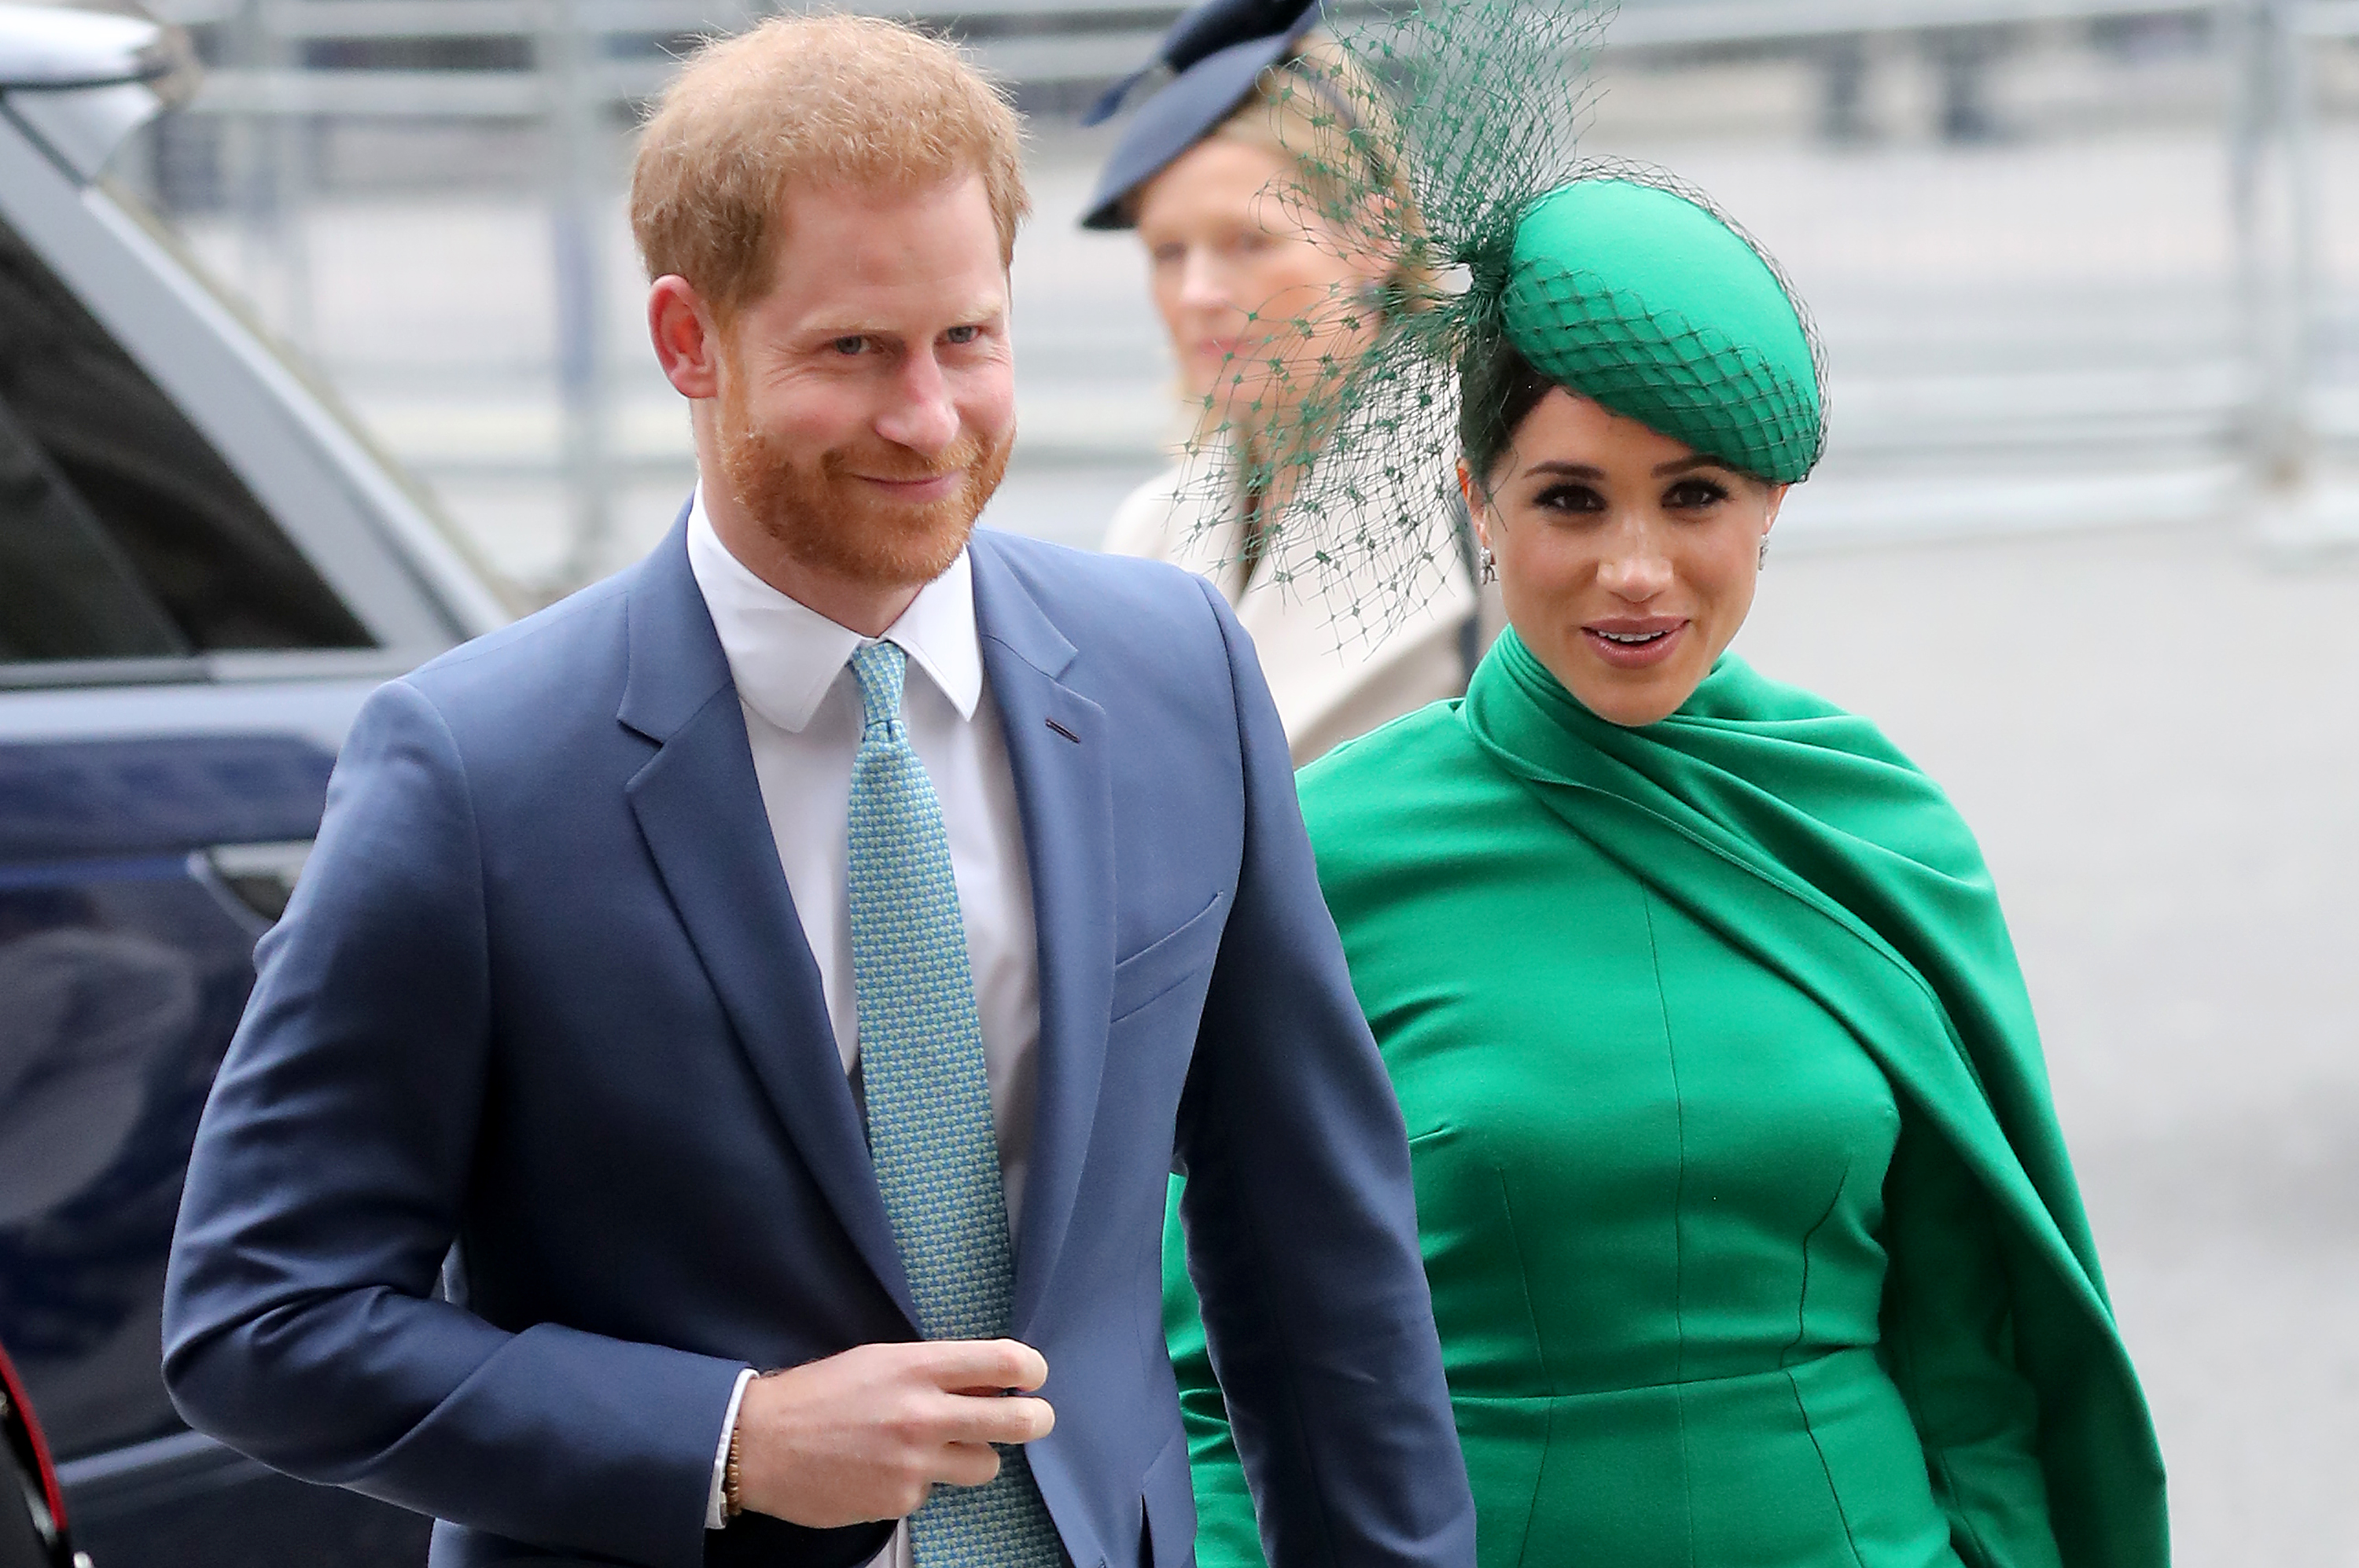 Prince Harry discusses stepping back as royal, his relationship with the queen in 'Late Late Show' debut